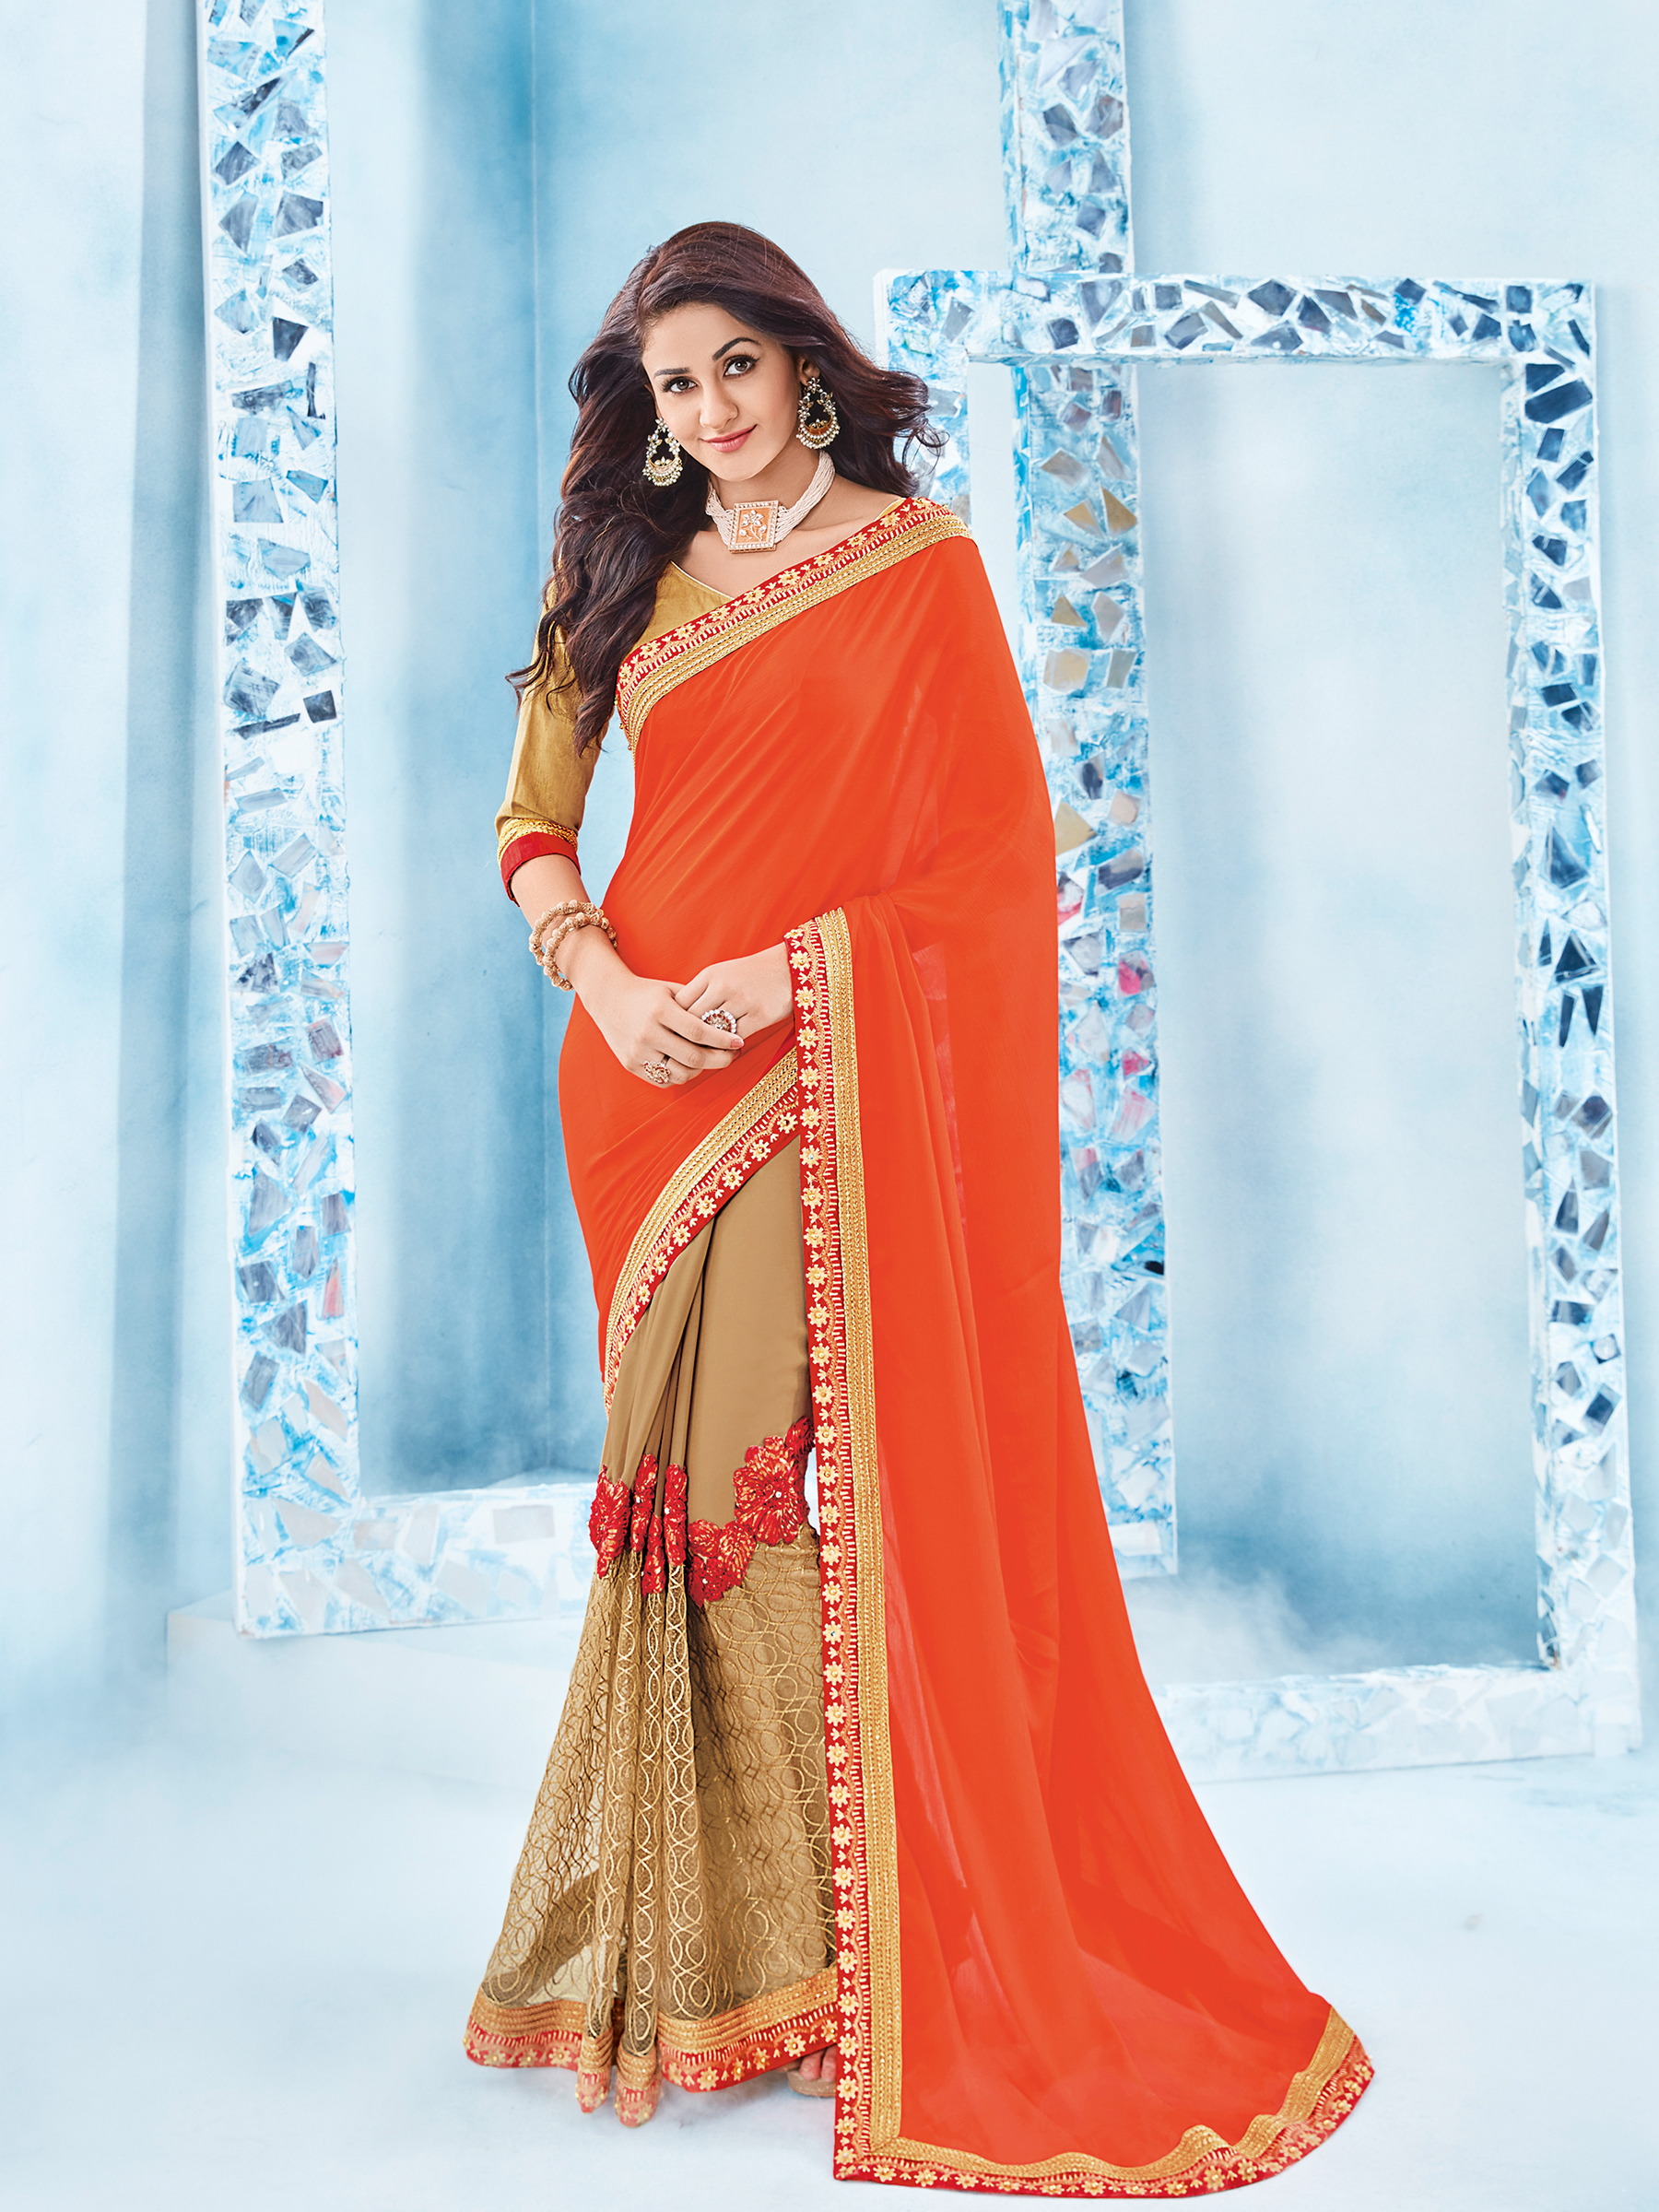 e2c16f8c6a8 orange and beige designer floral design and stone chinnon and georgette  saree with blouse - Indian Women Fashions Pvt Ltd - 2269553